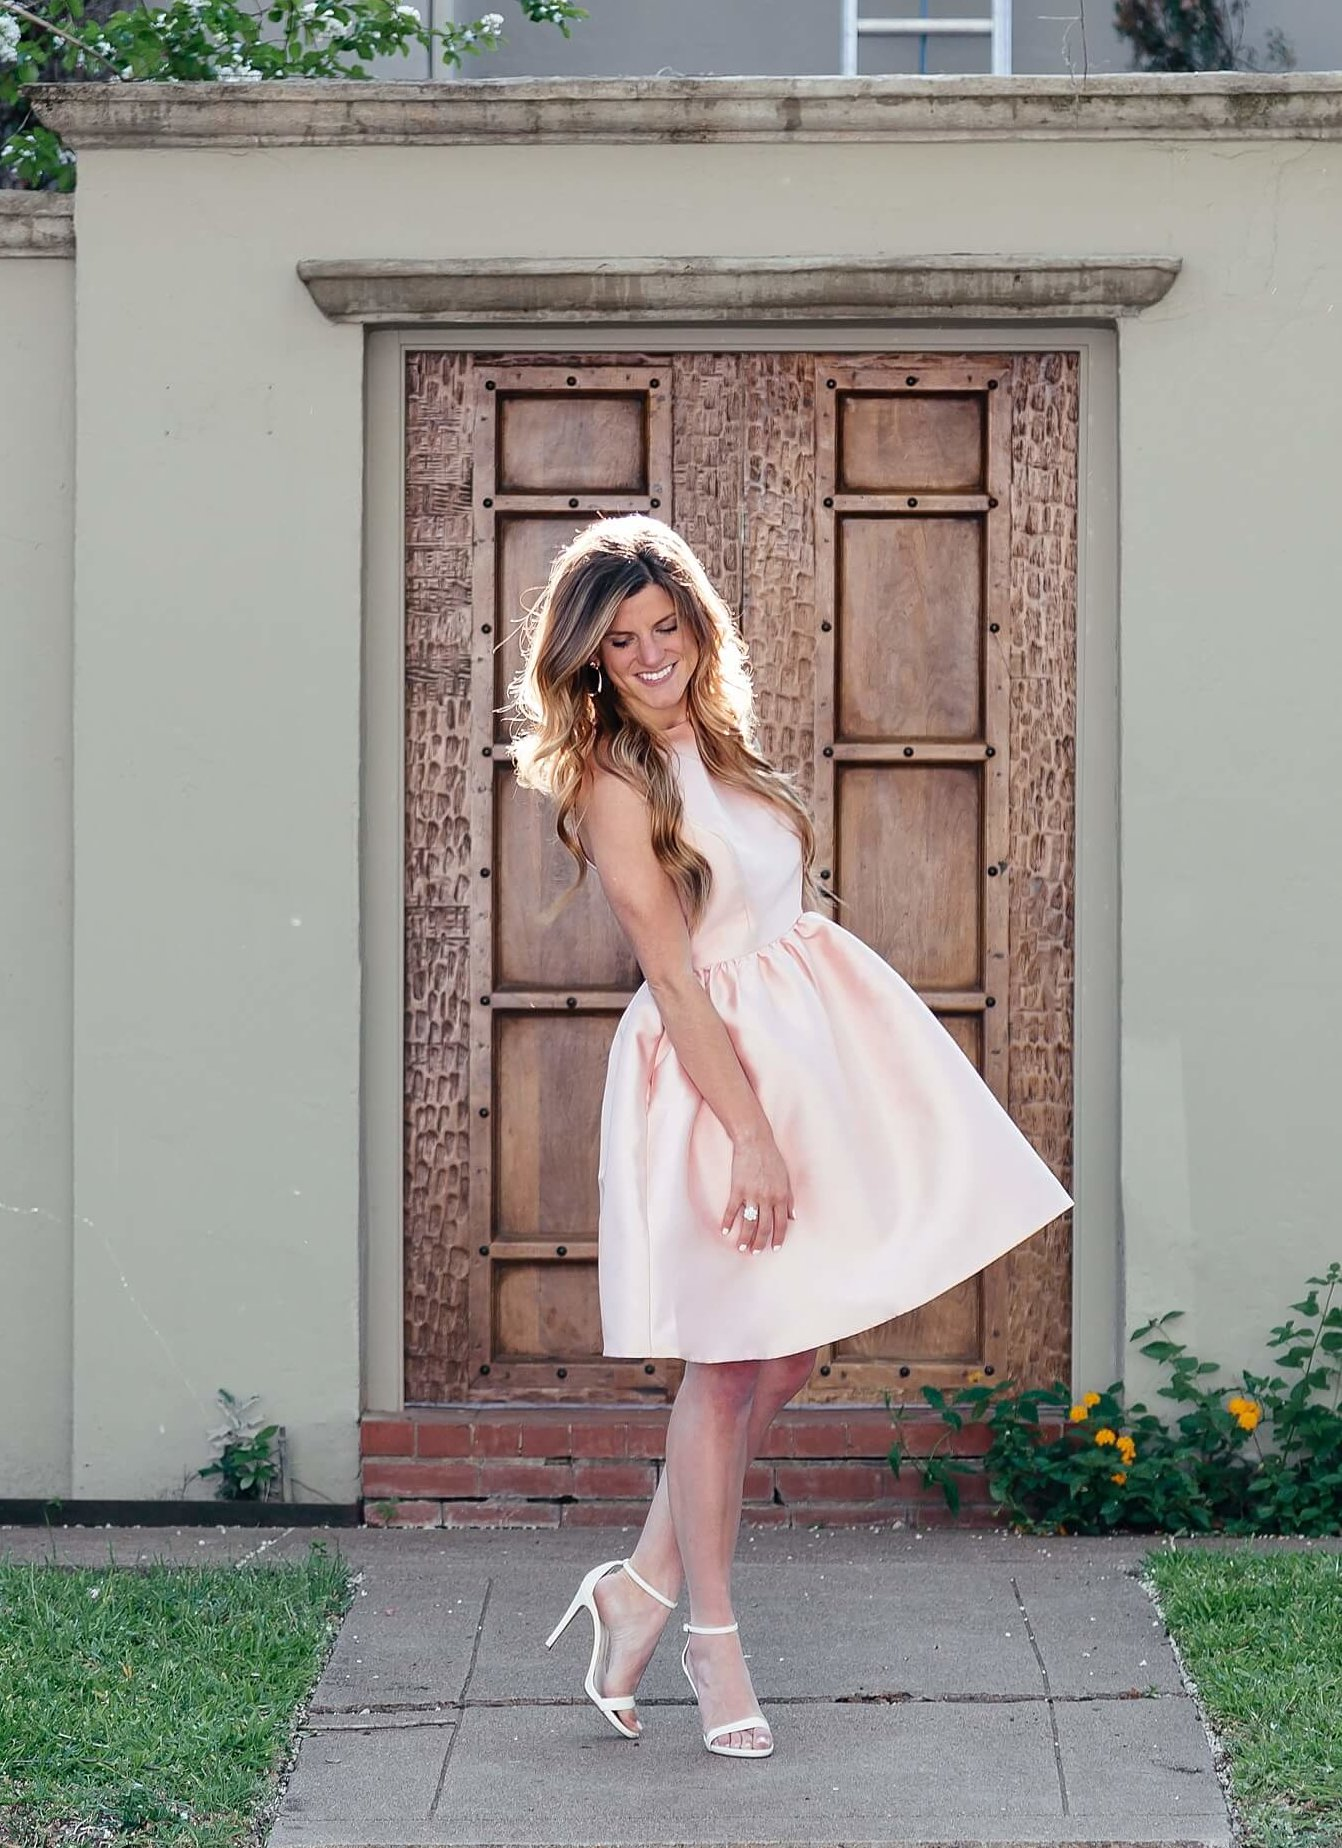 brighton keller styling modcloth fit and flare dress for guest of a wedding outfit ideas, summer wedding dress